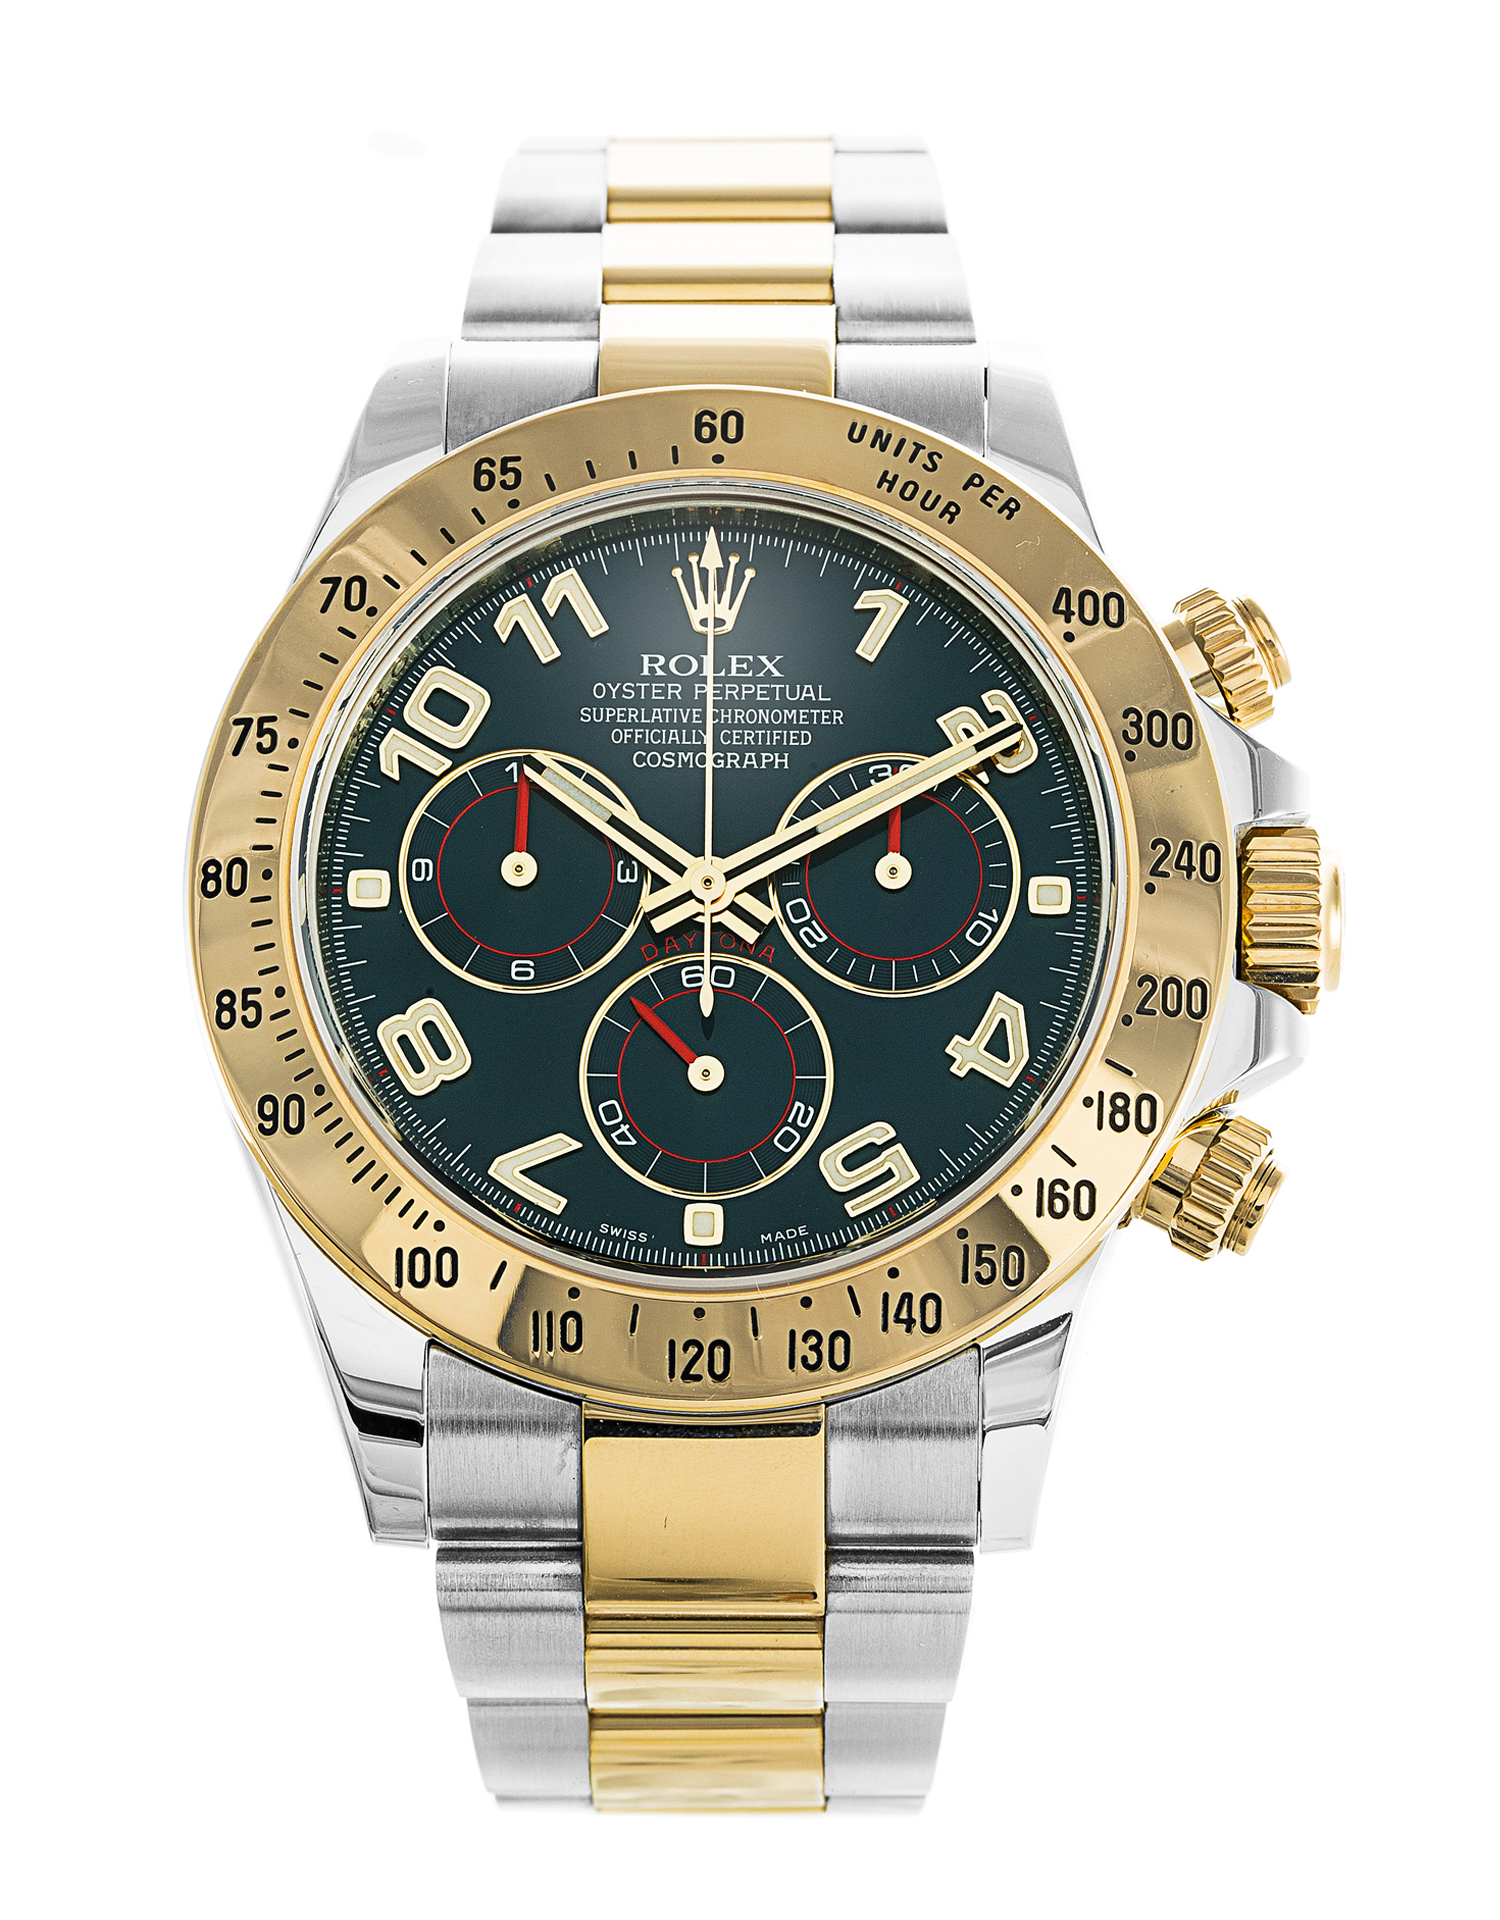 Rolex watch daytona price in india